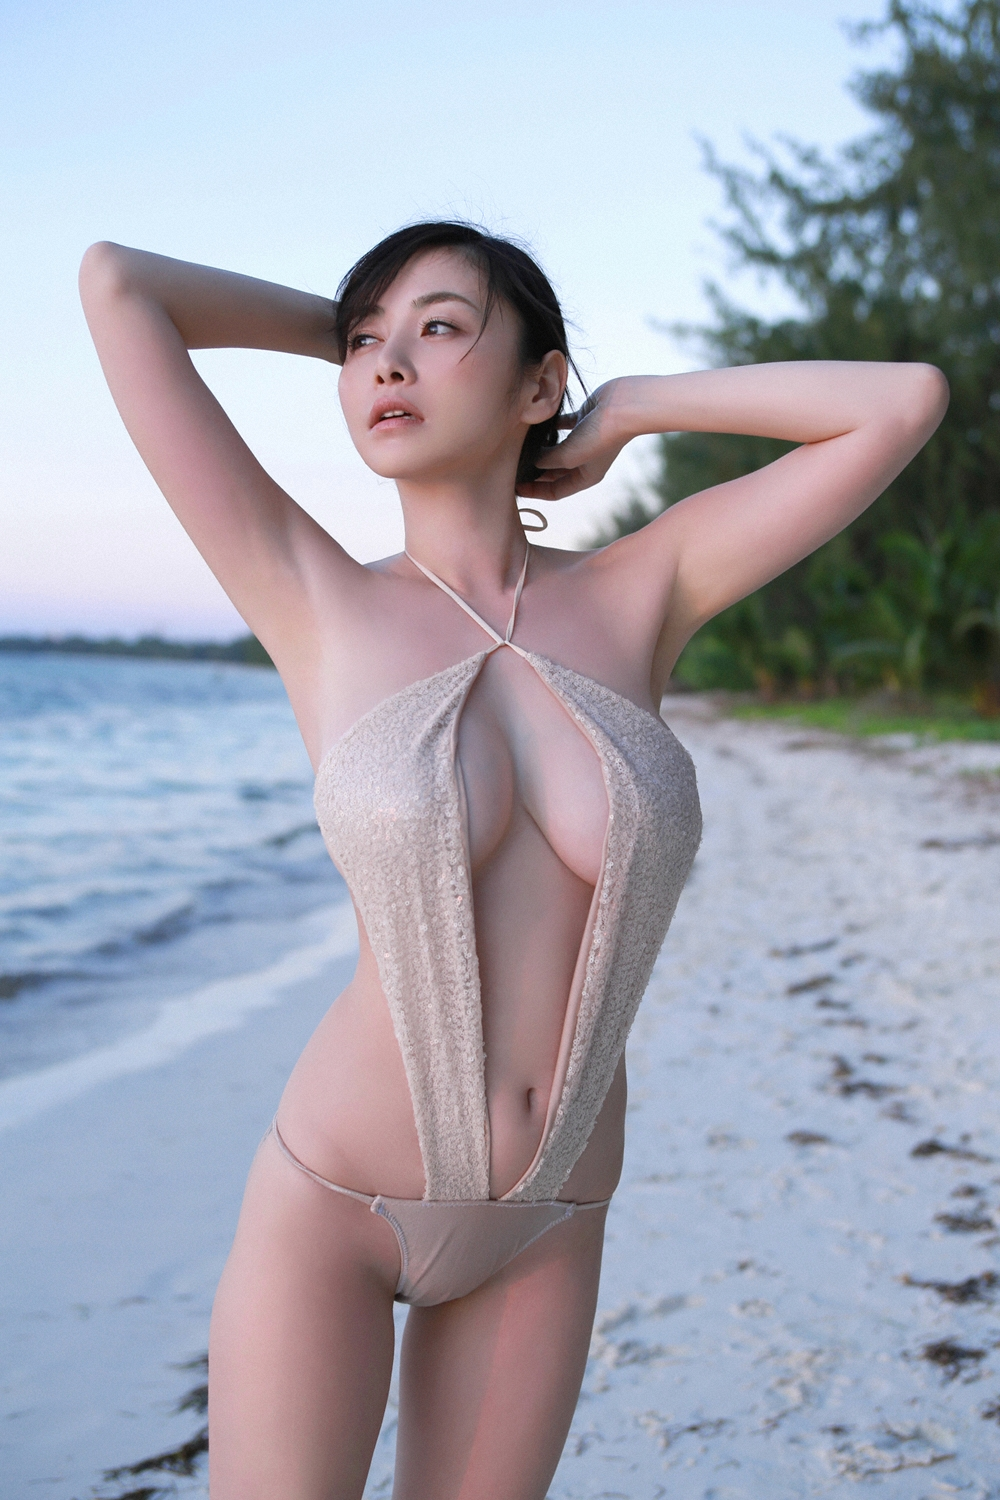 杉原杏璃 Anri Sugihara YS Web Vol 655 Pictures 62